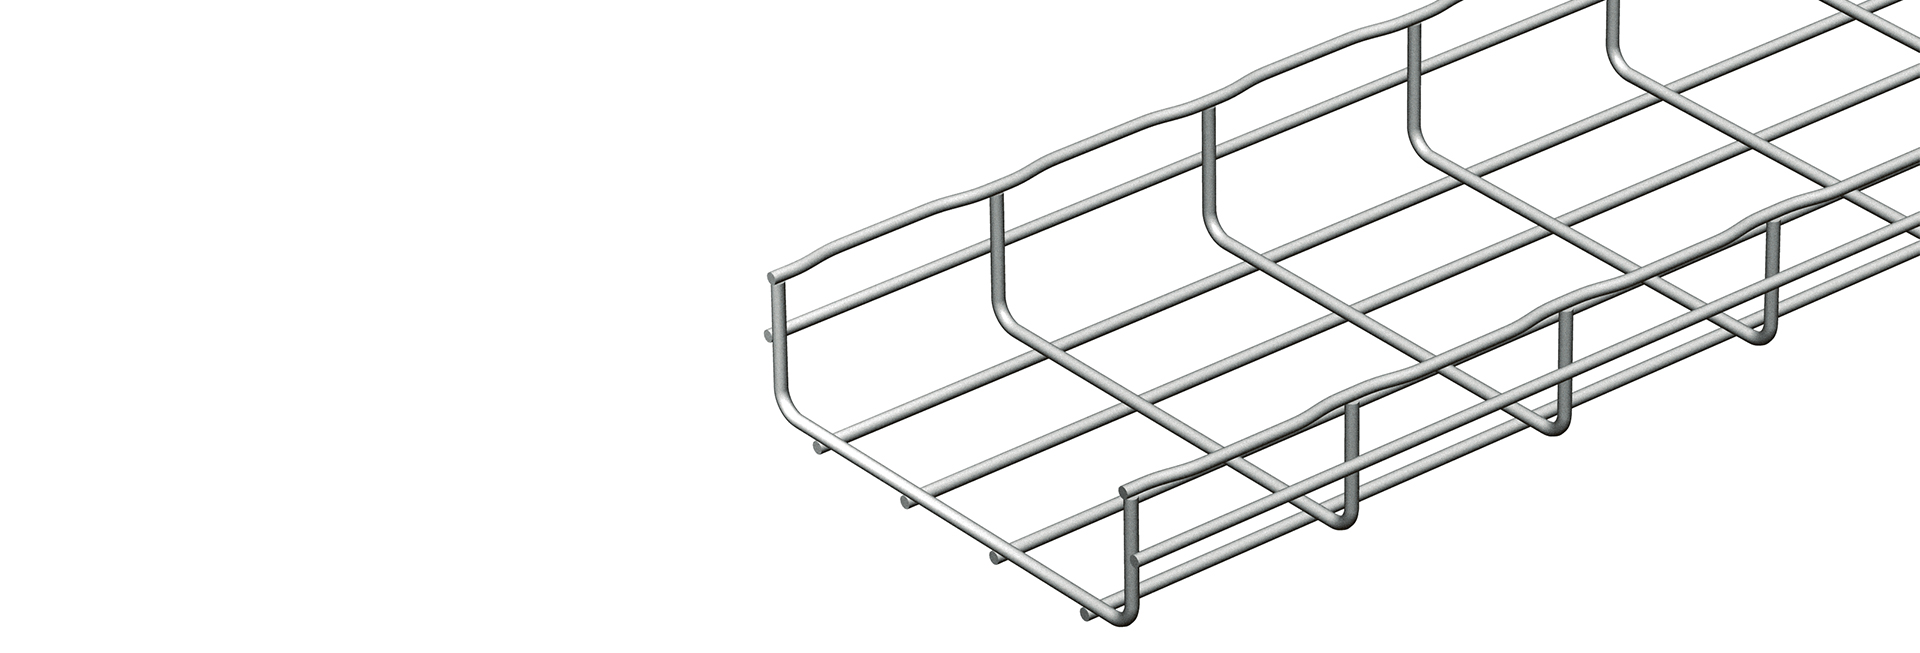 Cablofil steel wire cable tray introduces zinc aluminium alloy range